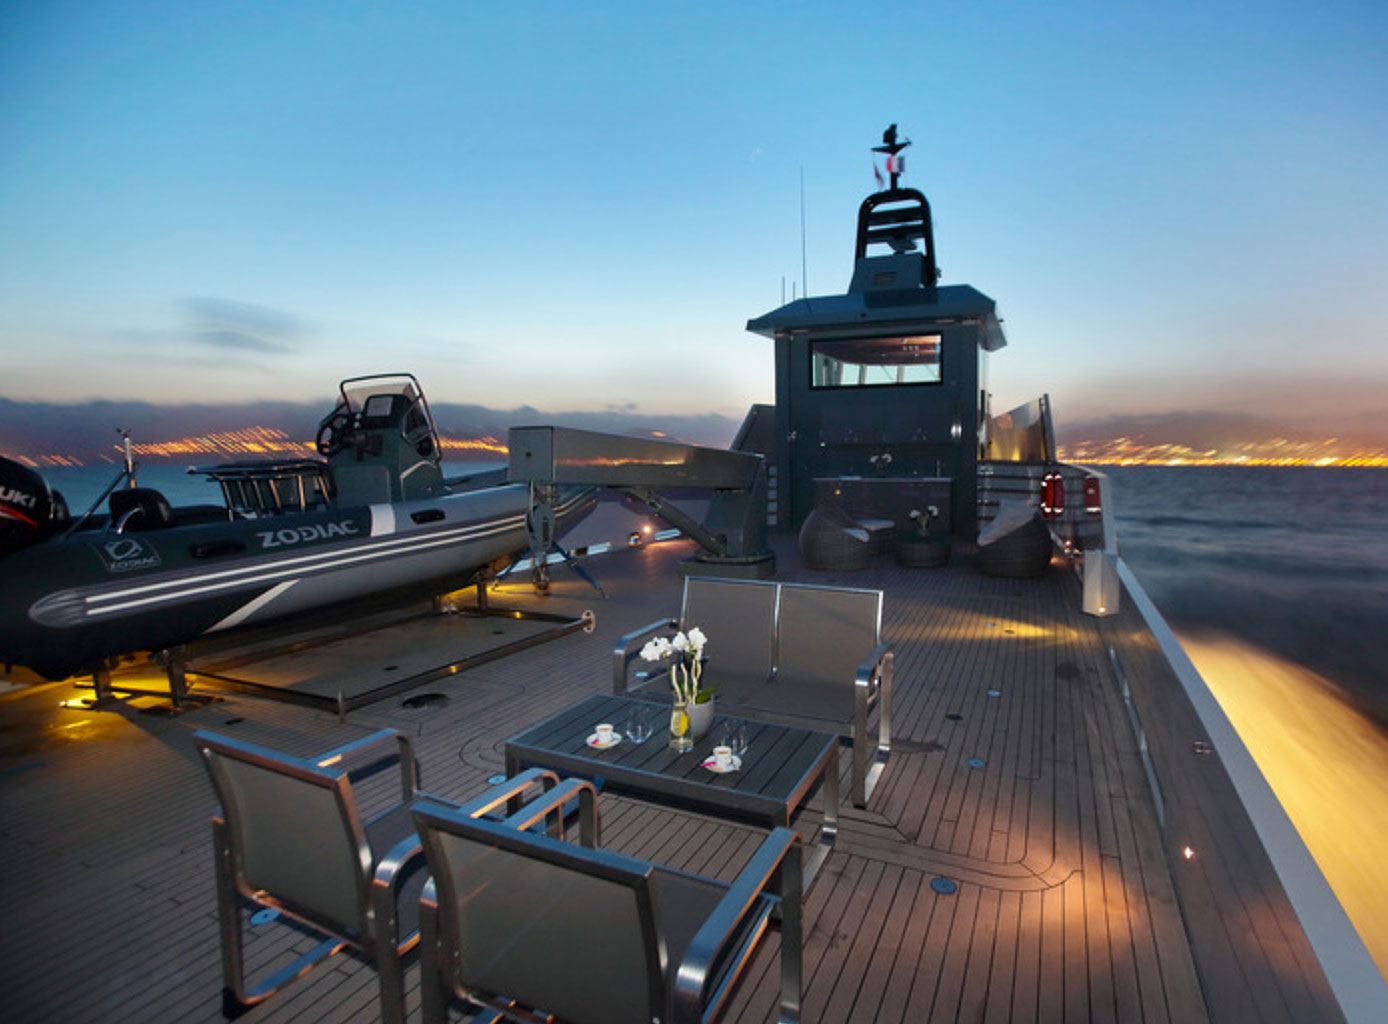 If You Have To Ask What a Shadow Yacht Is, You Probably Can't Afford One…